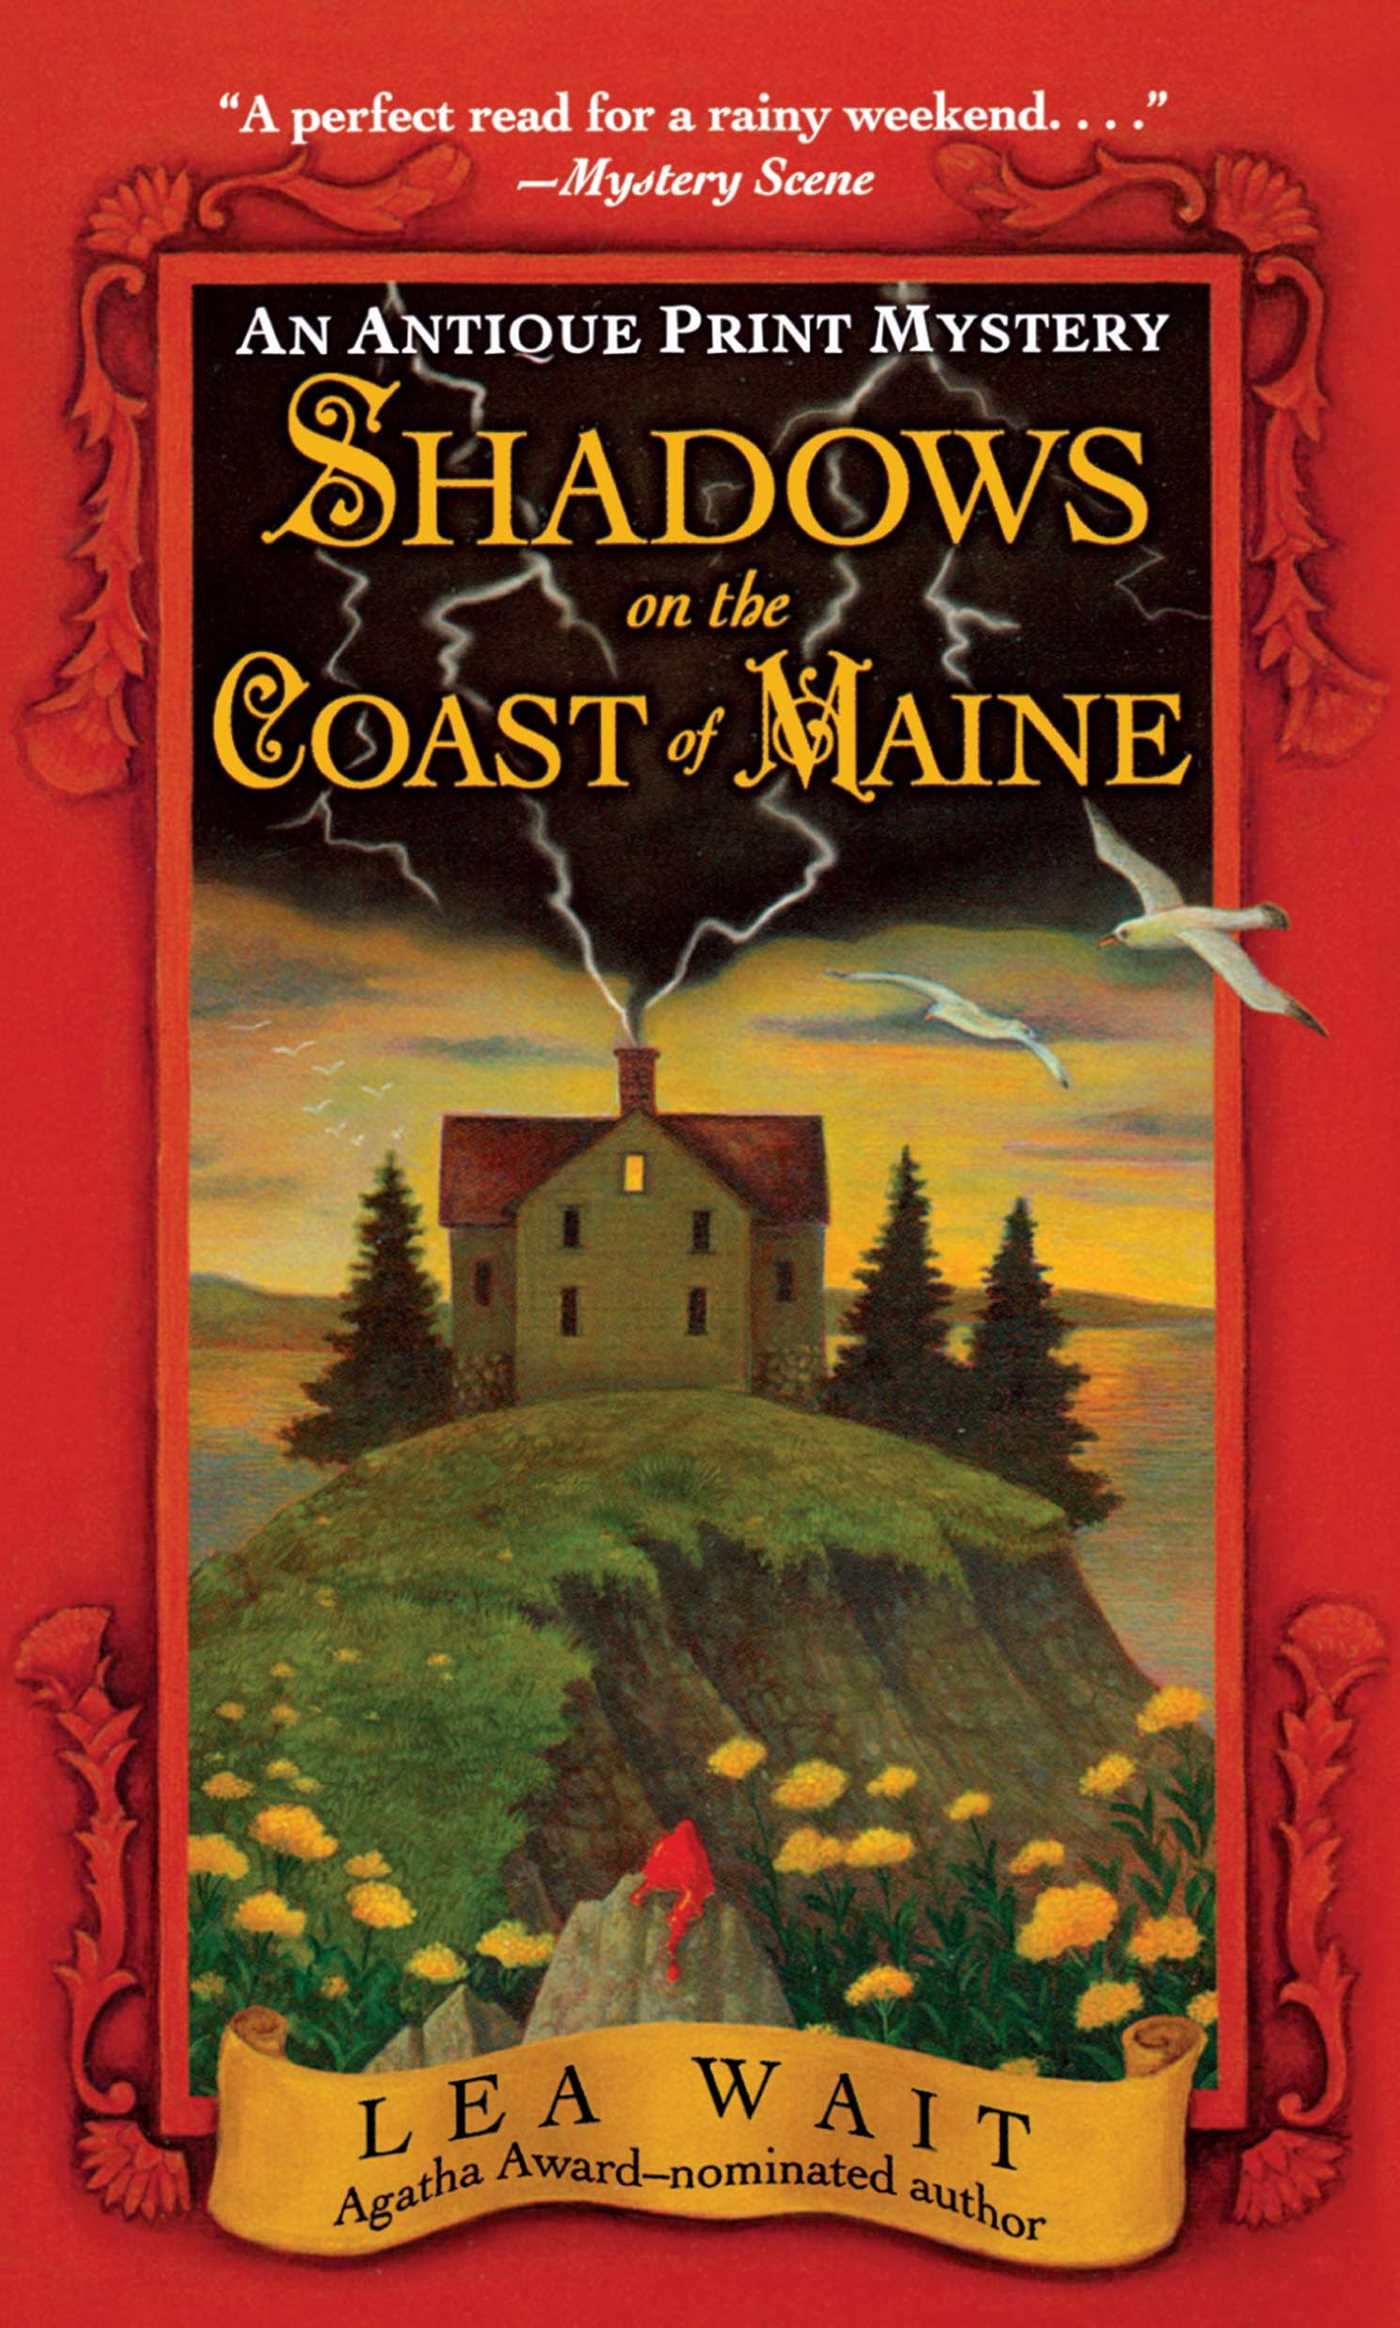 Shadows on the coast of maine 9781416587712 hr